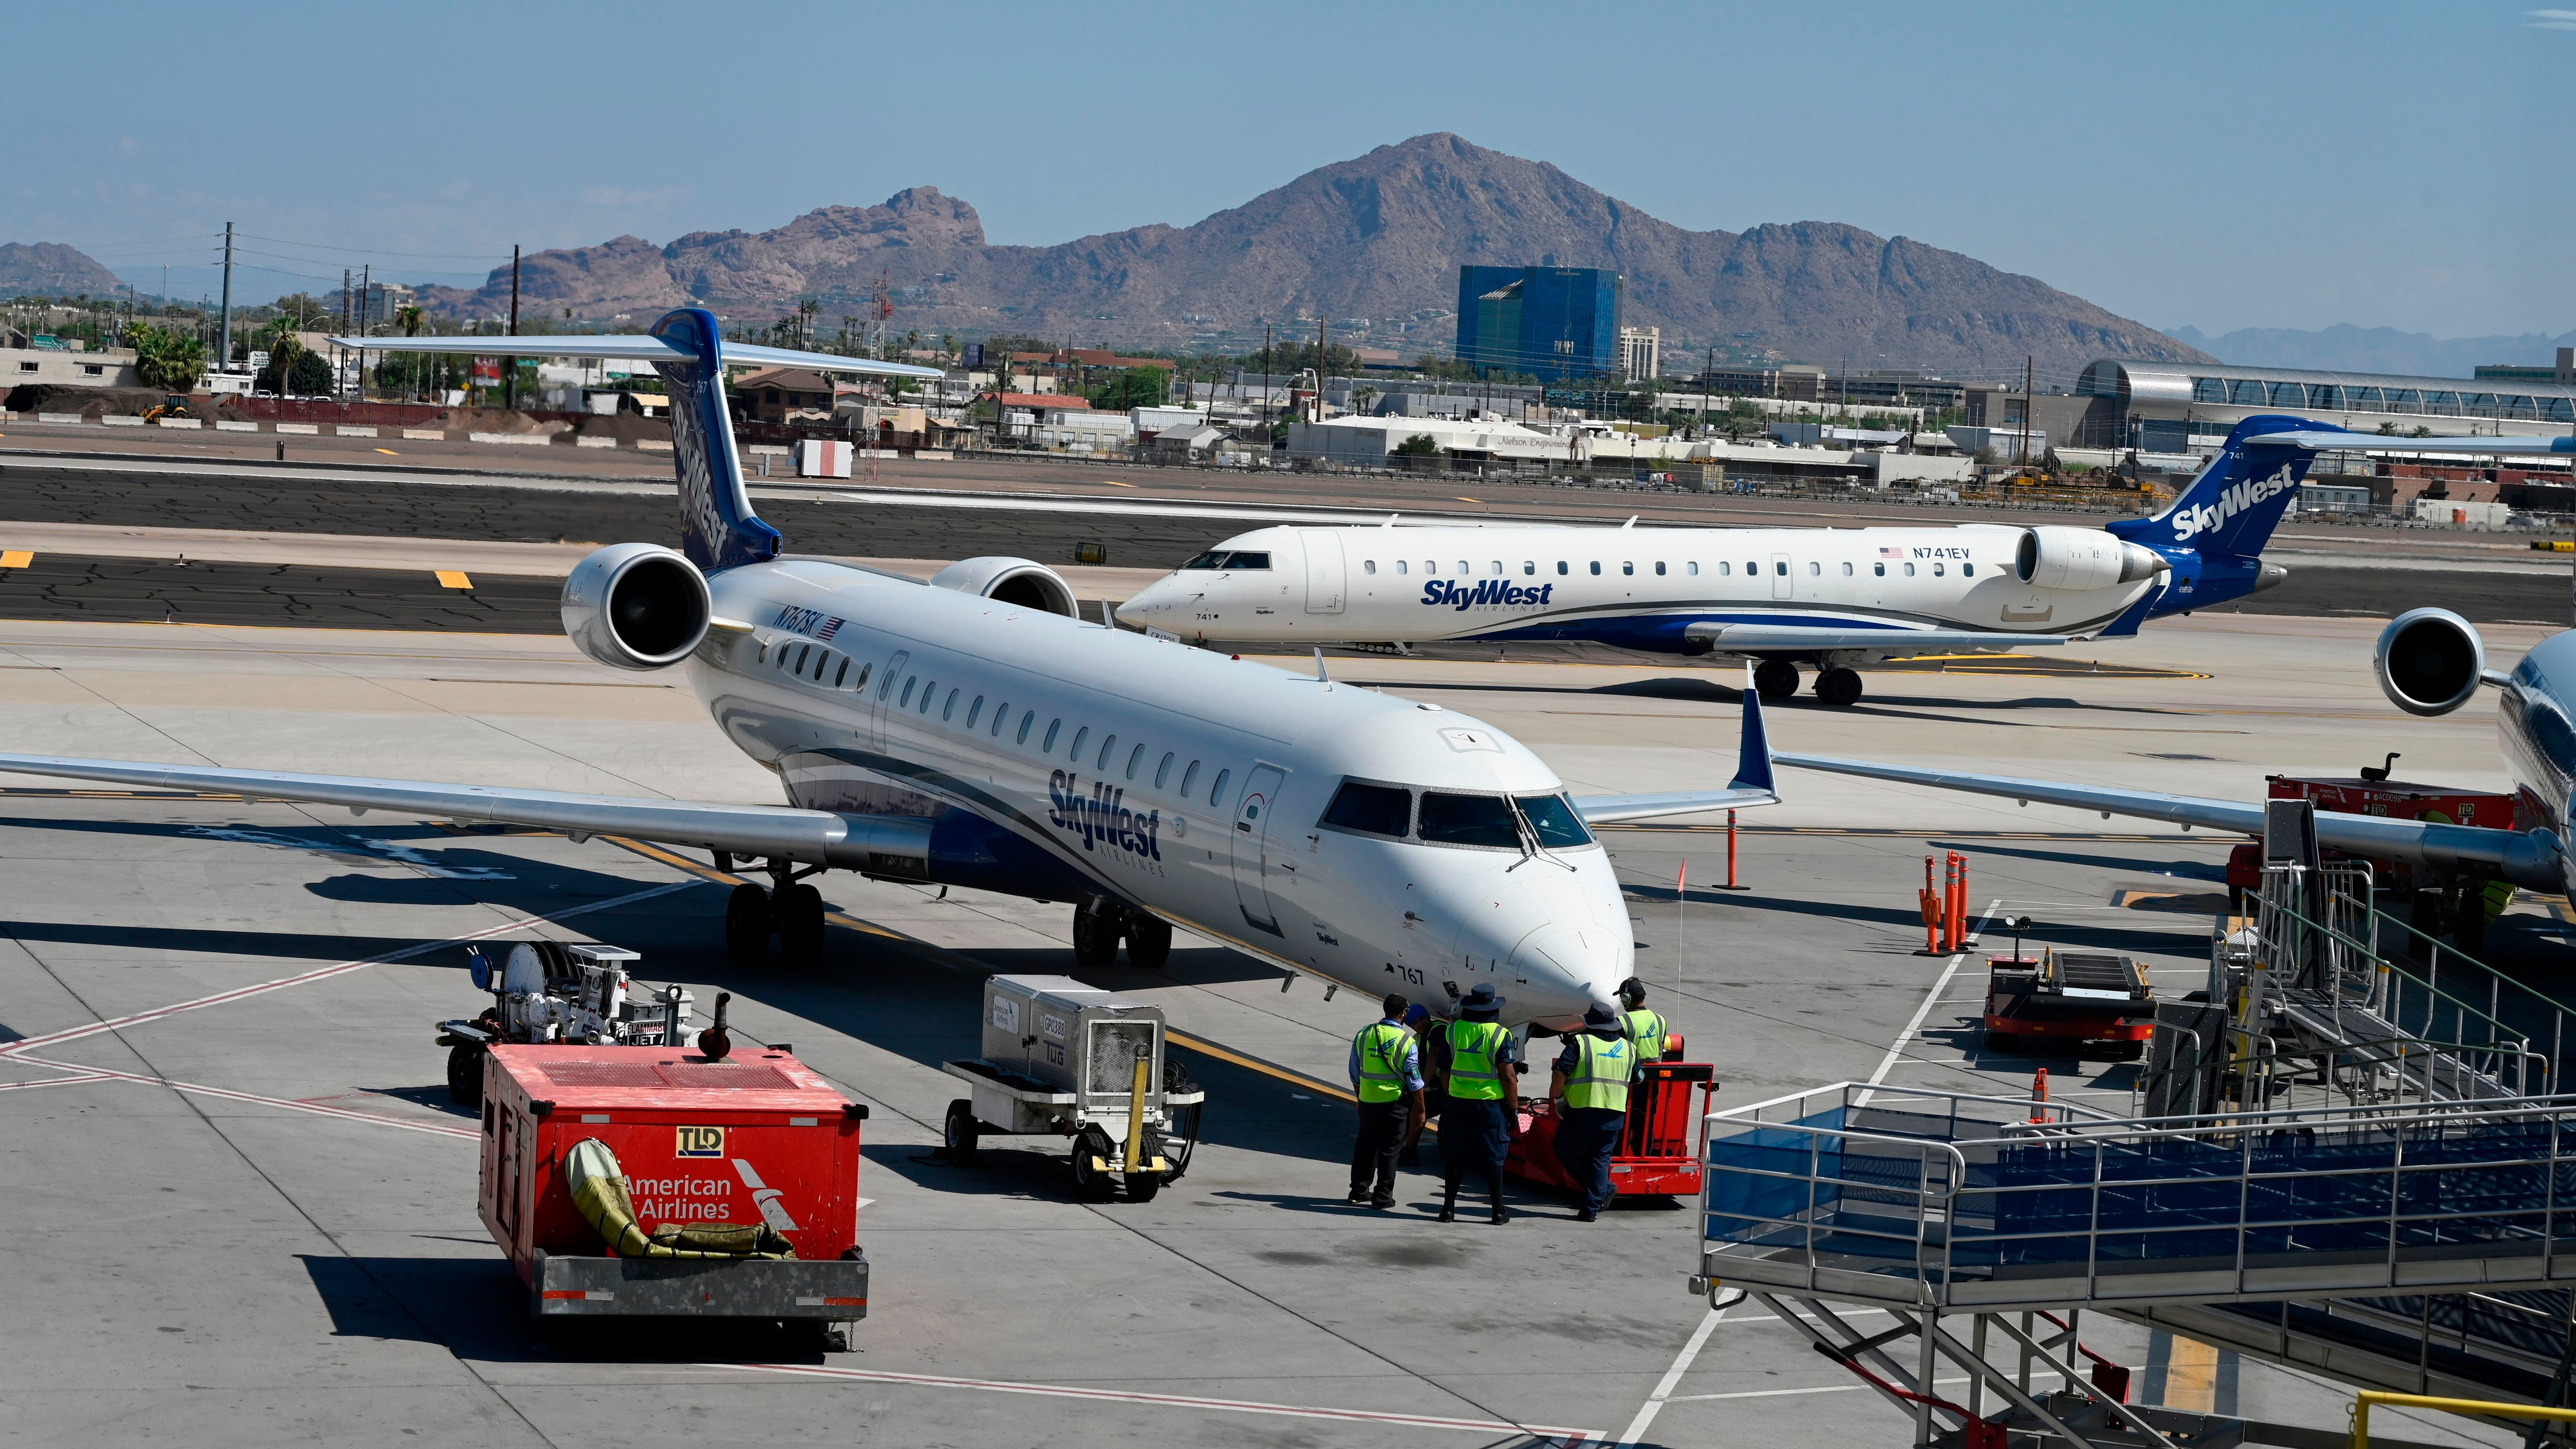 SkyWest Airlines cancellations ripple across multiple major airlines